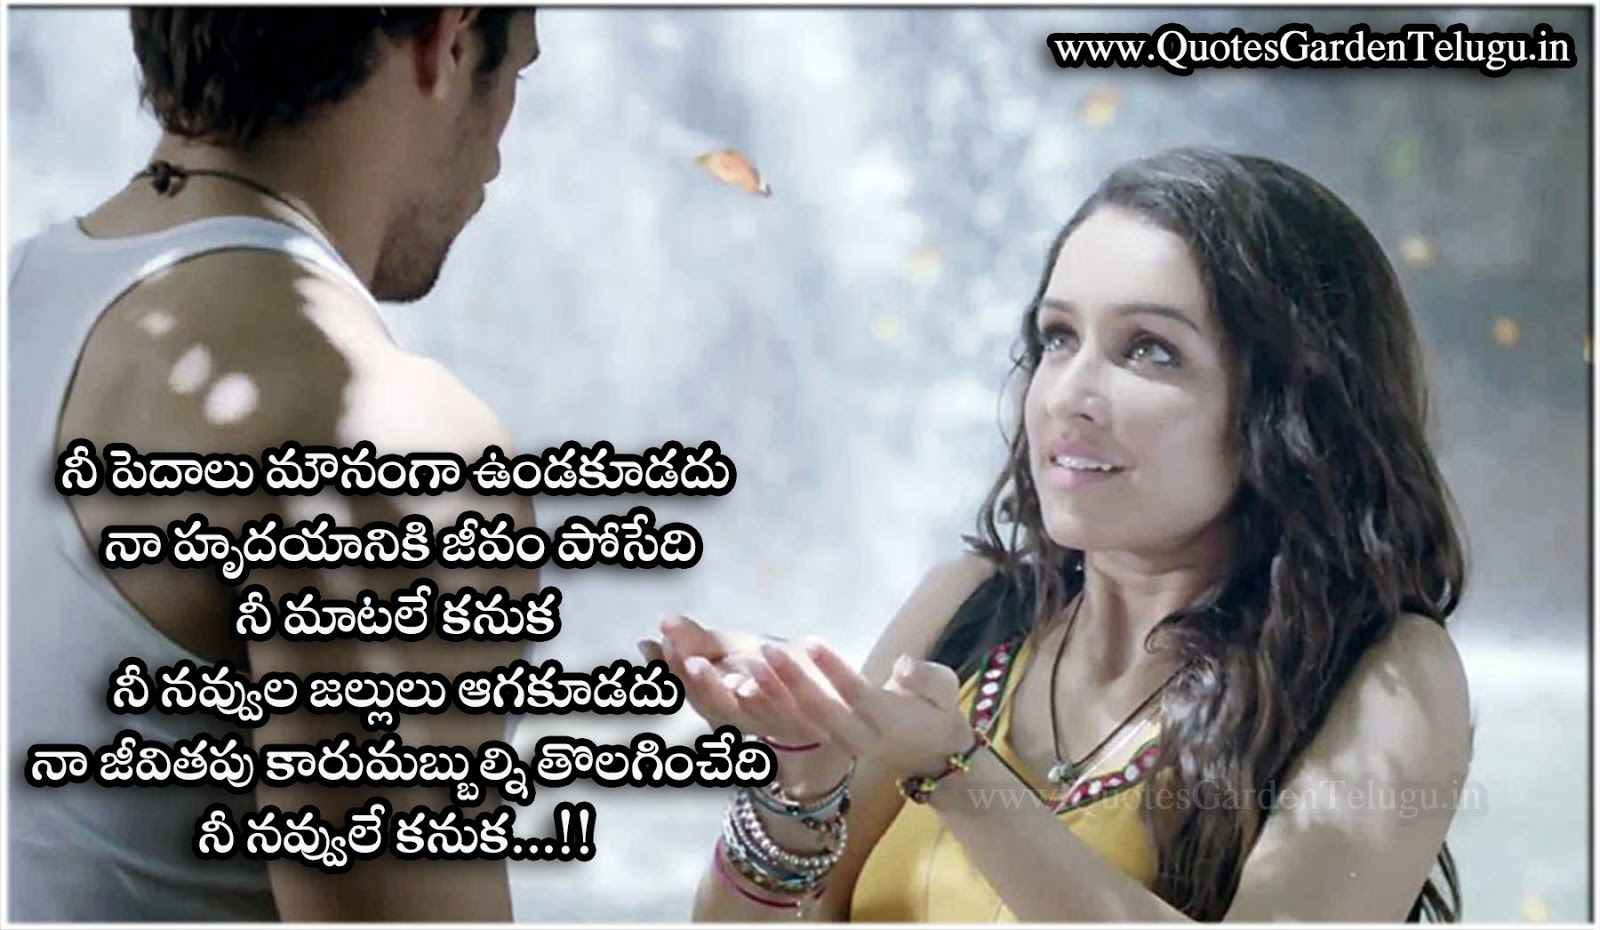 Telugu Love Quotes Heart Touching Telugu Love Quotations  Nice Love Quotes Thoughts